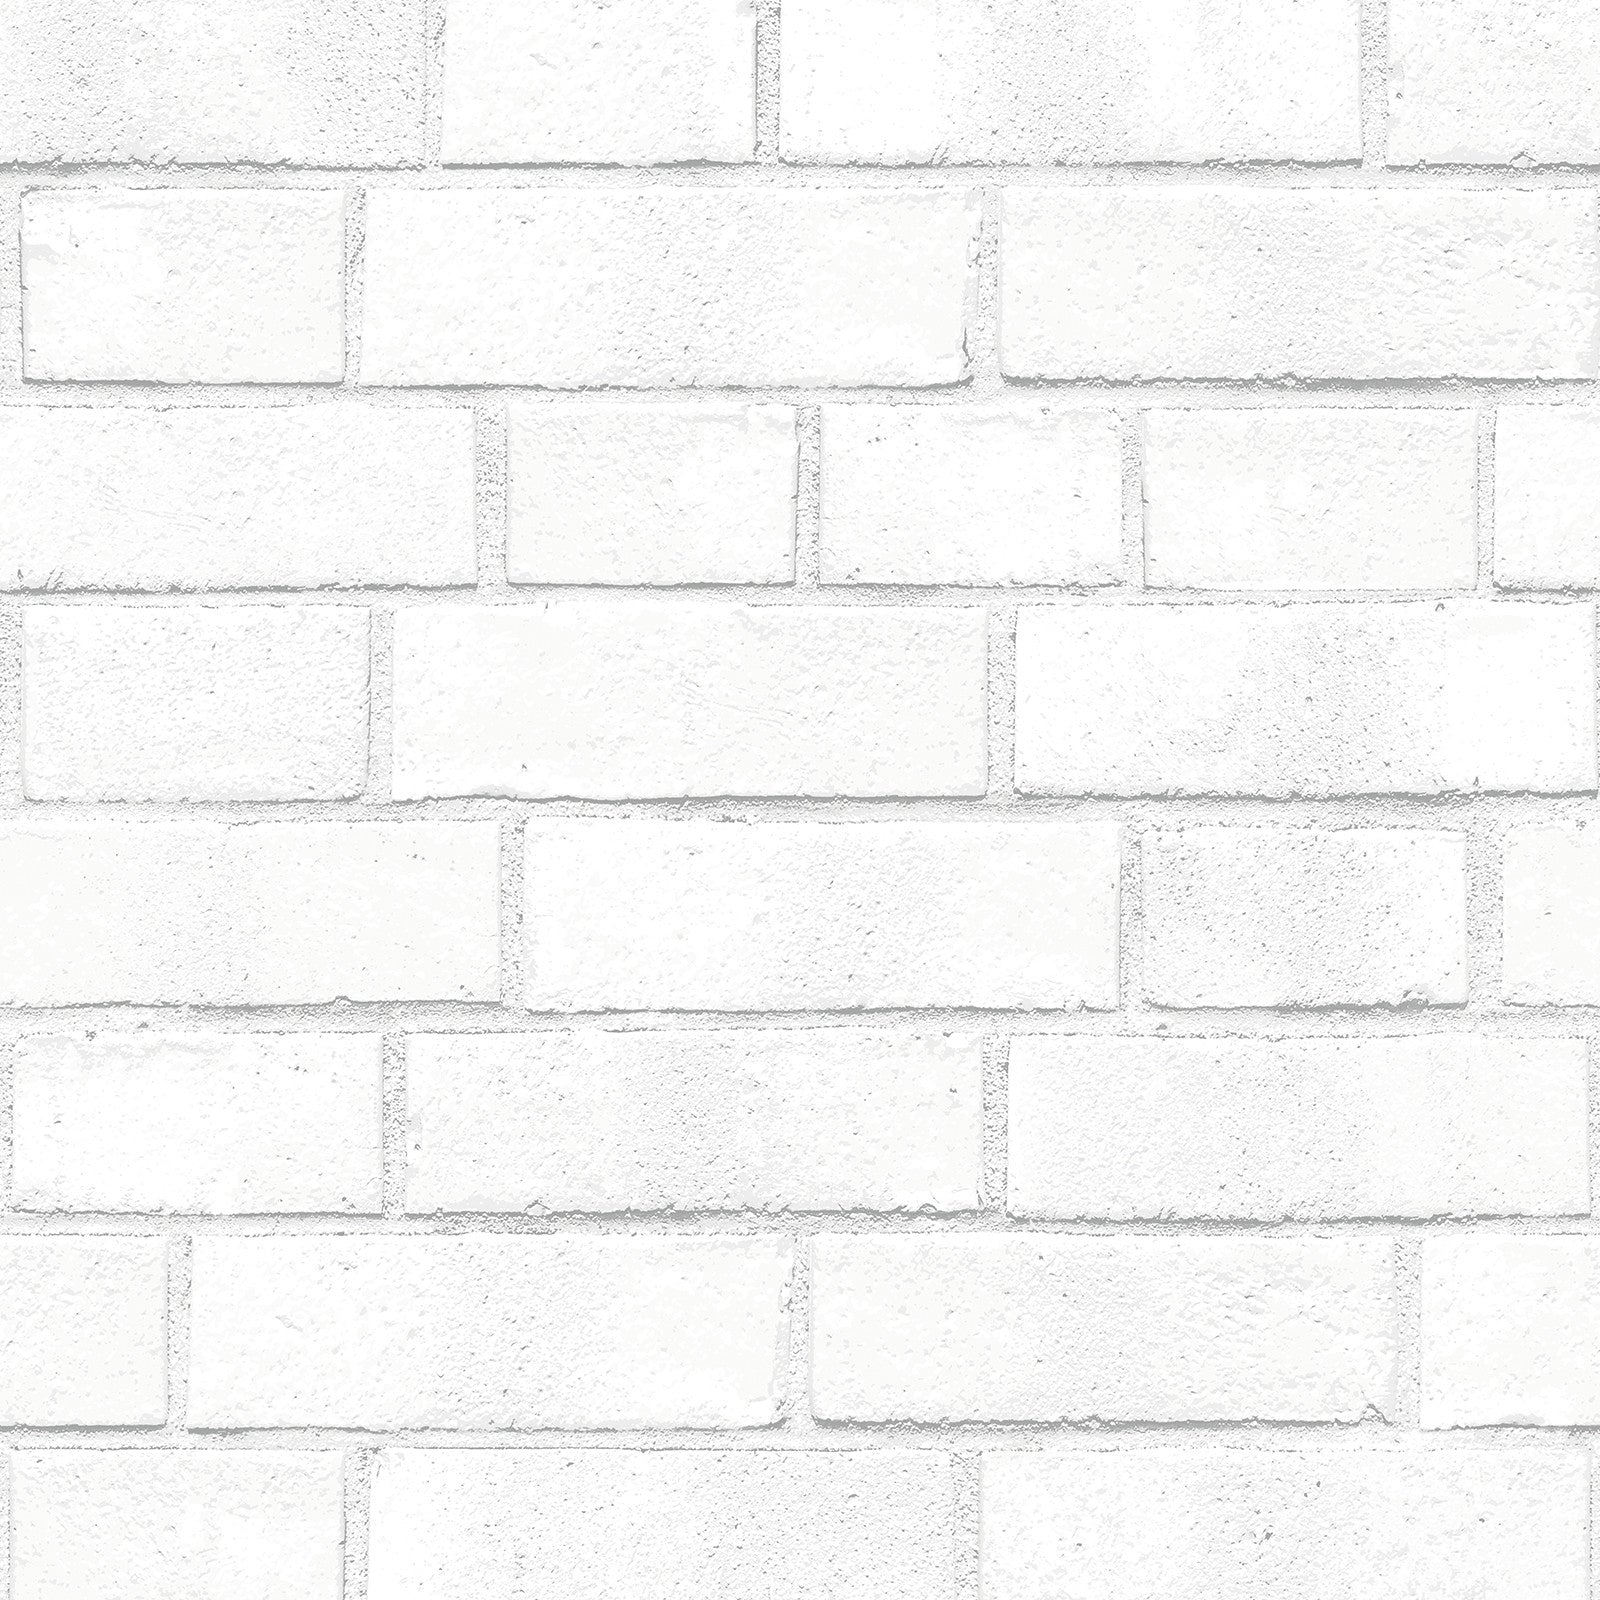 Sample Brick White Textured Self Adhesive Wallpaper design by